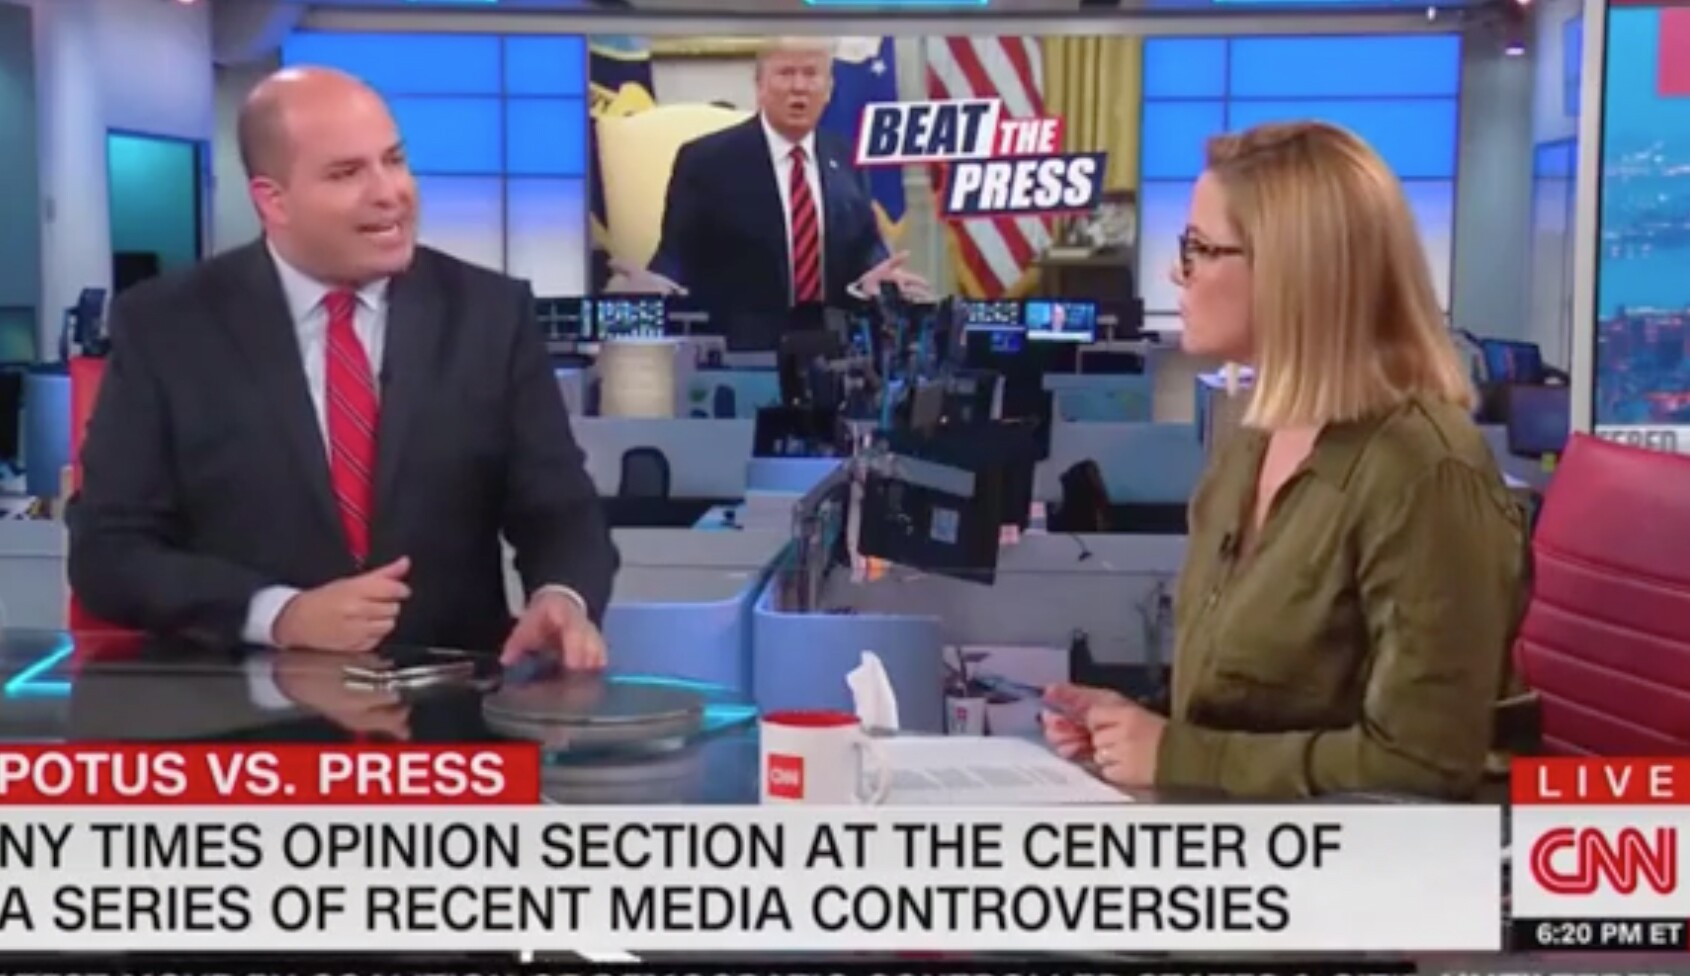 '<i>New York Times</i> is having a rough year': CNN anchors lament recent 'mistakes'